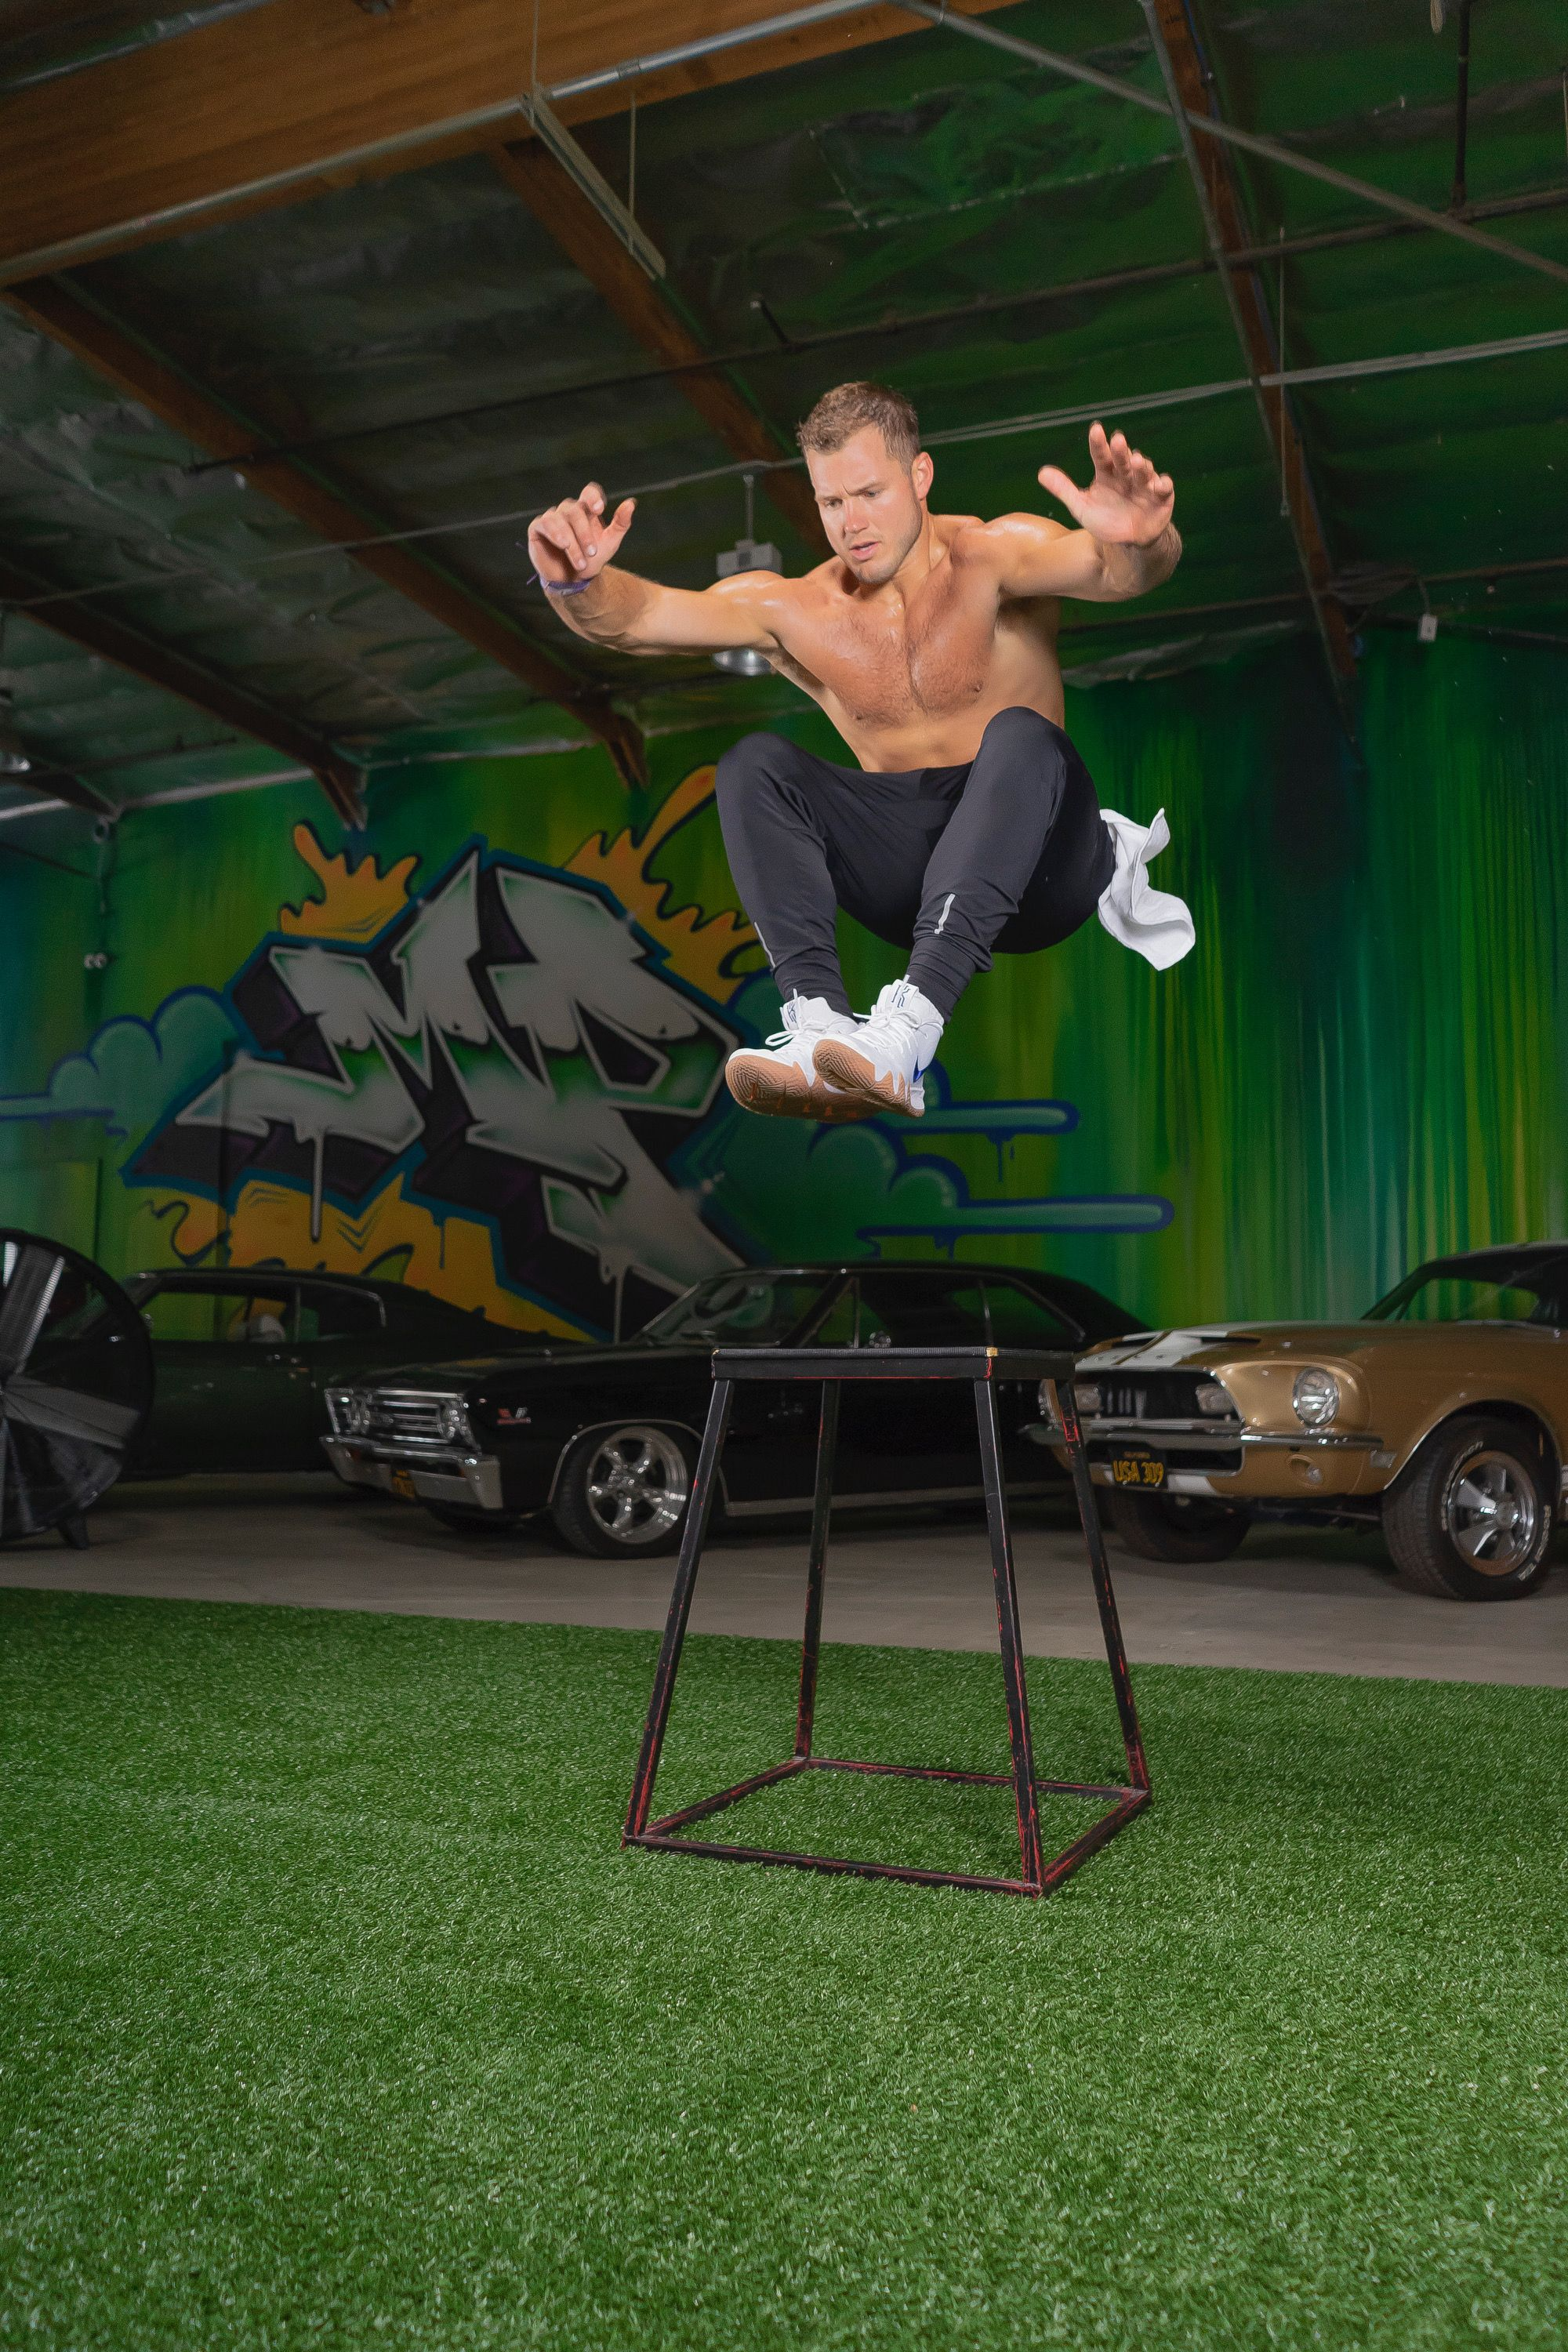 Colton Underwood, Star of ABC's The Bachelor, Lets Us in on His Diet and Workout Routine